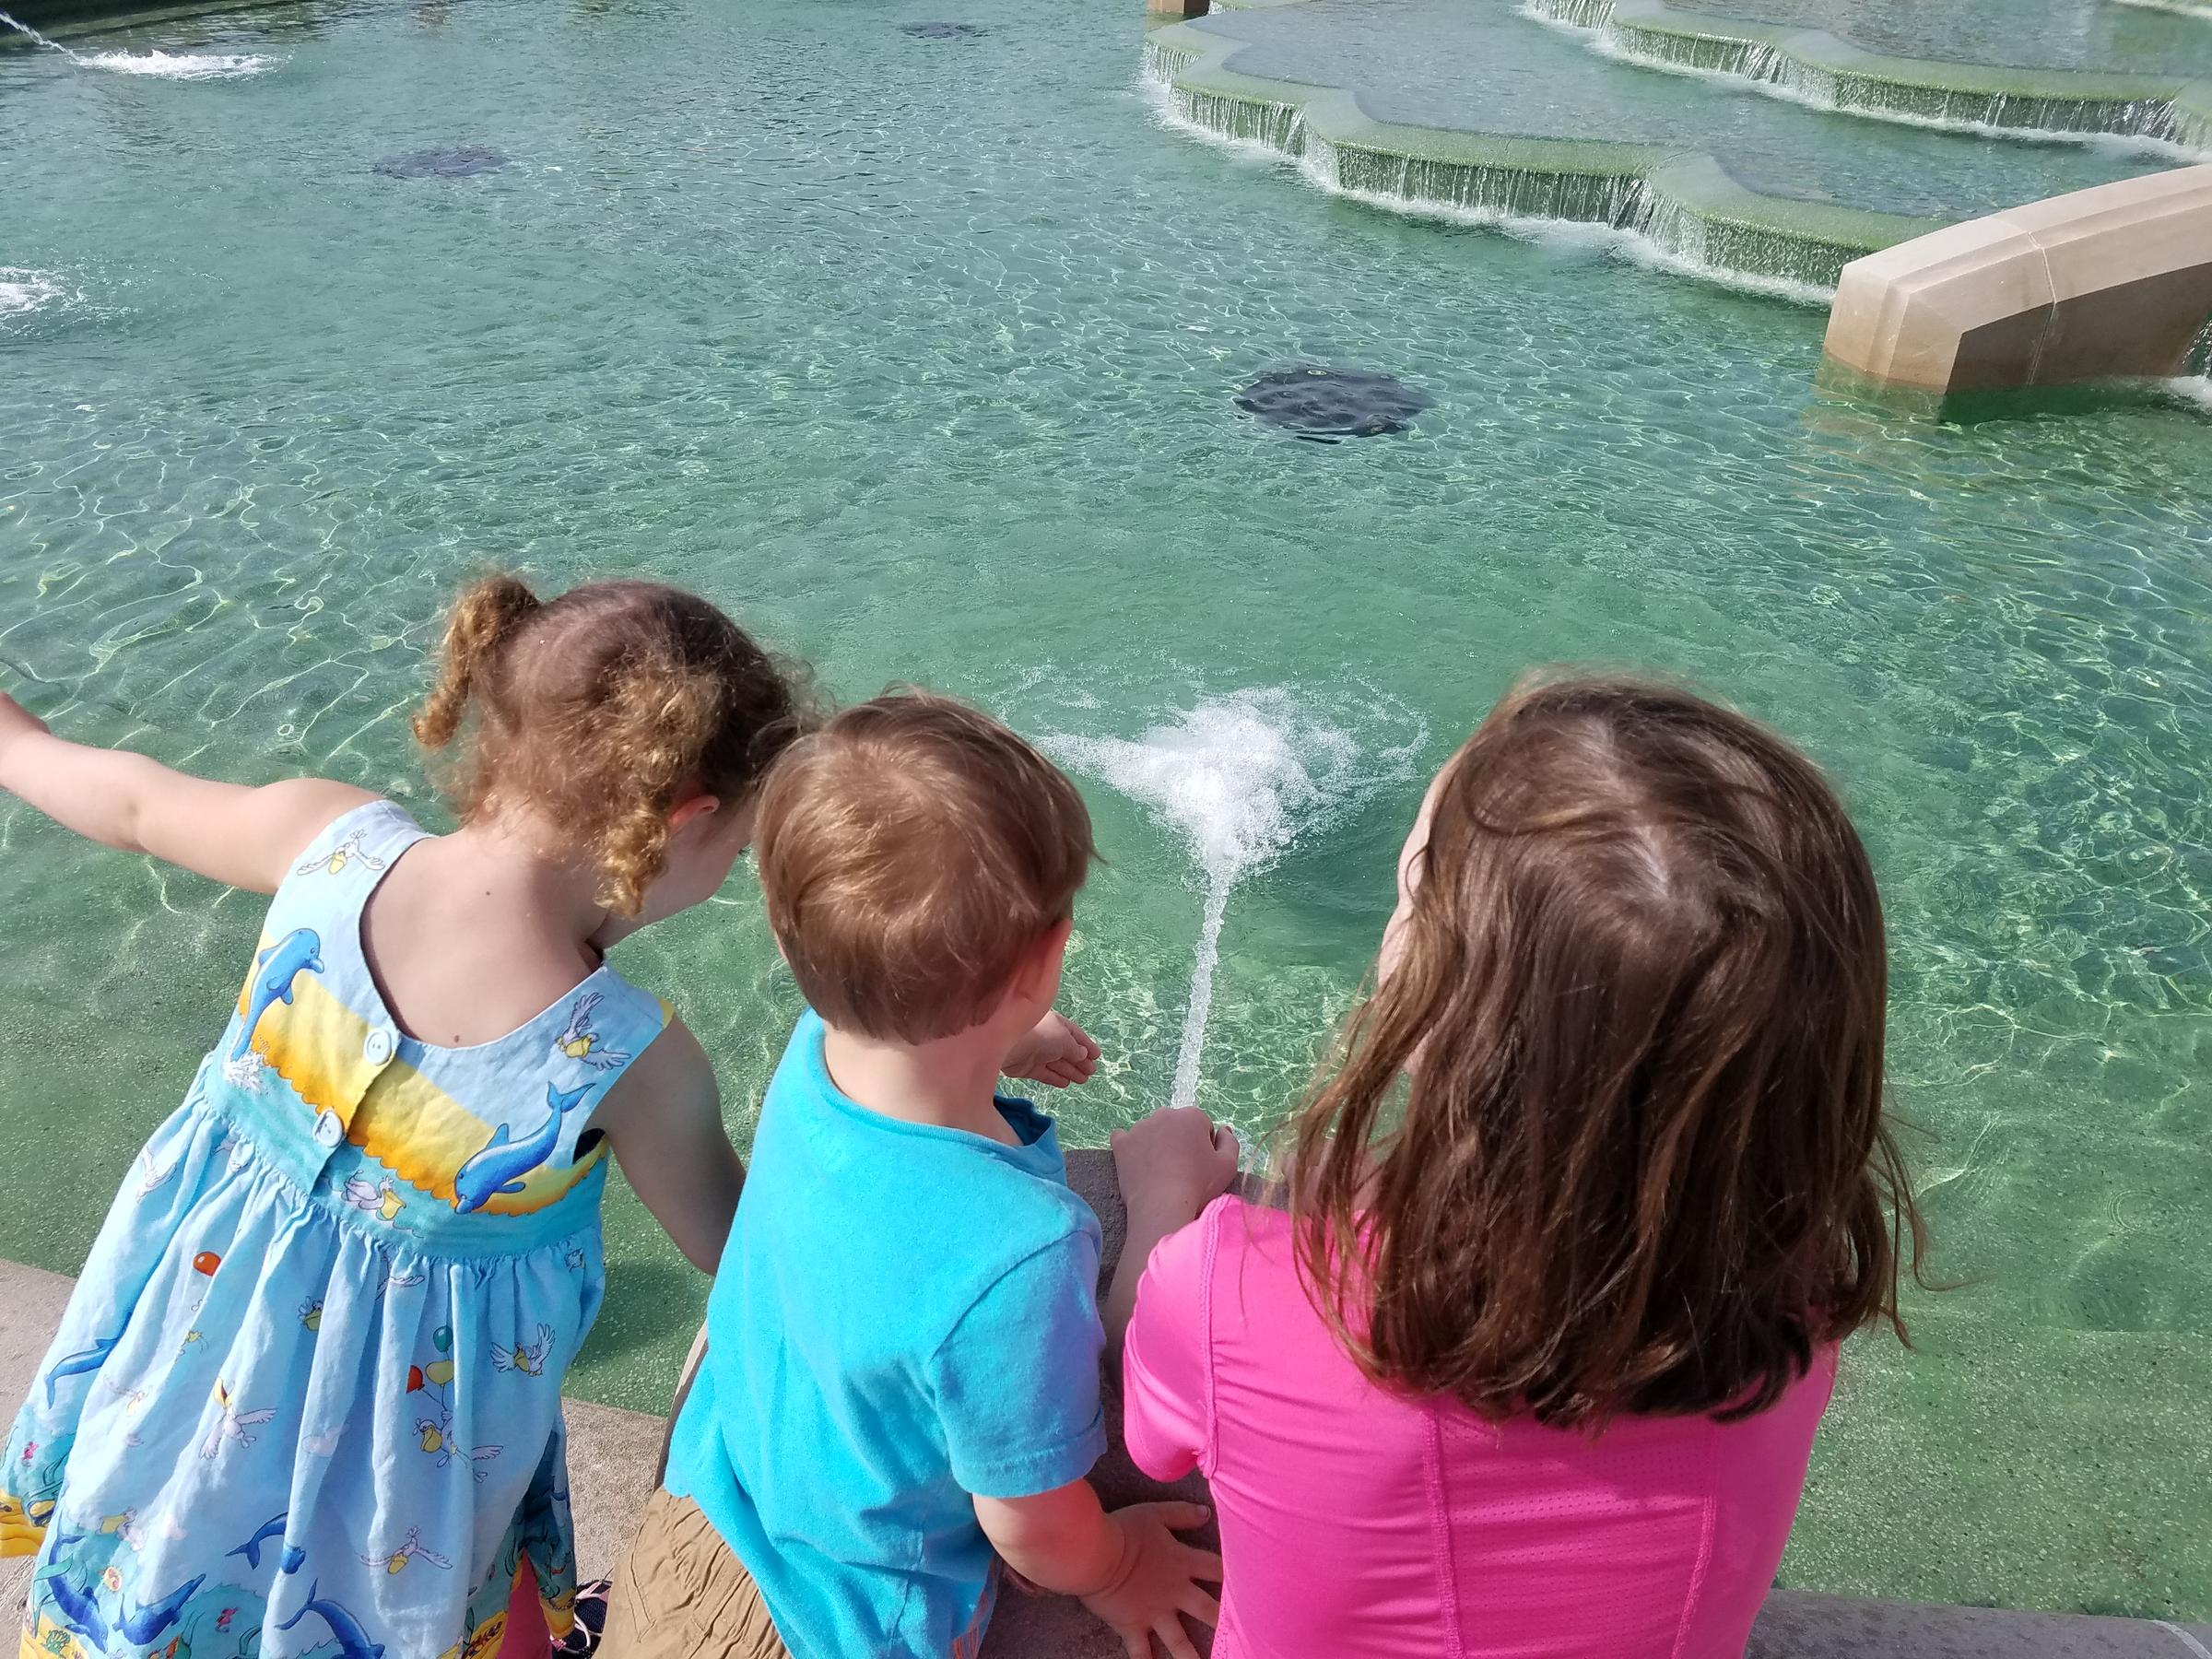 After 3 Years, Water Returns To Union Terminal Fountain | WVXU